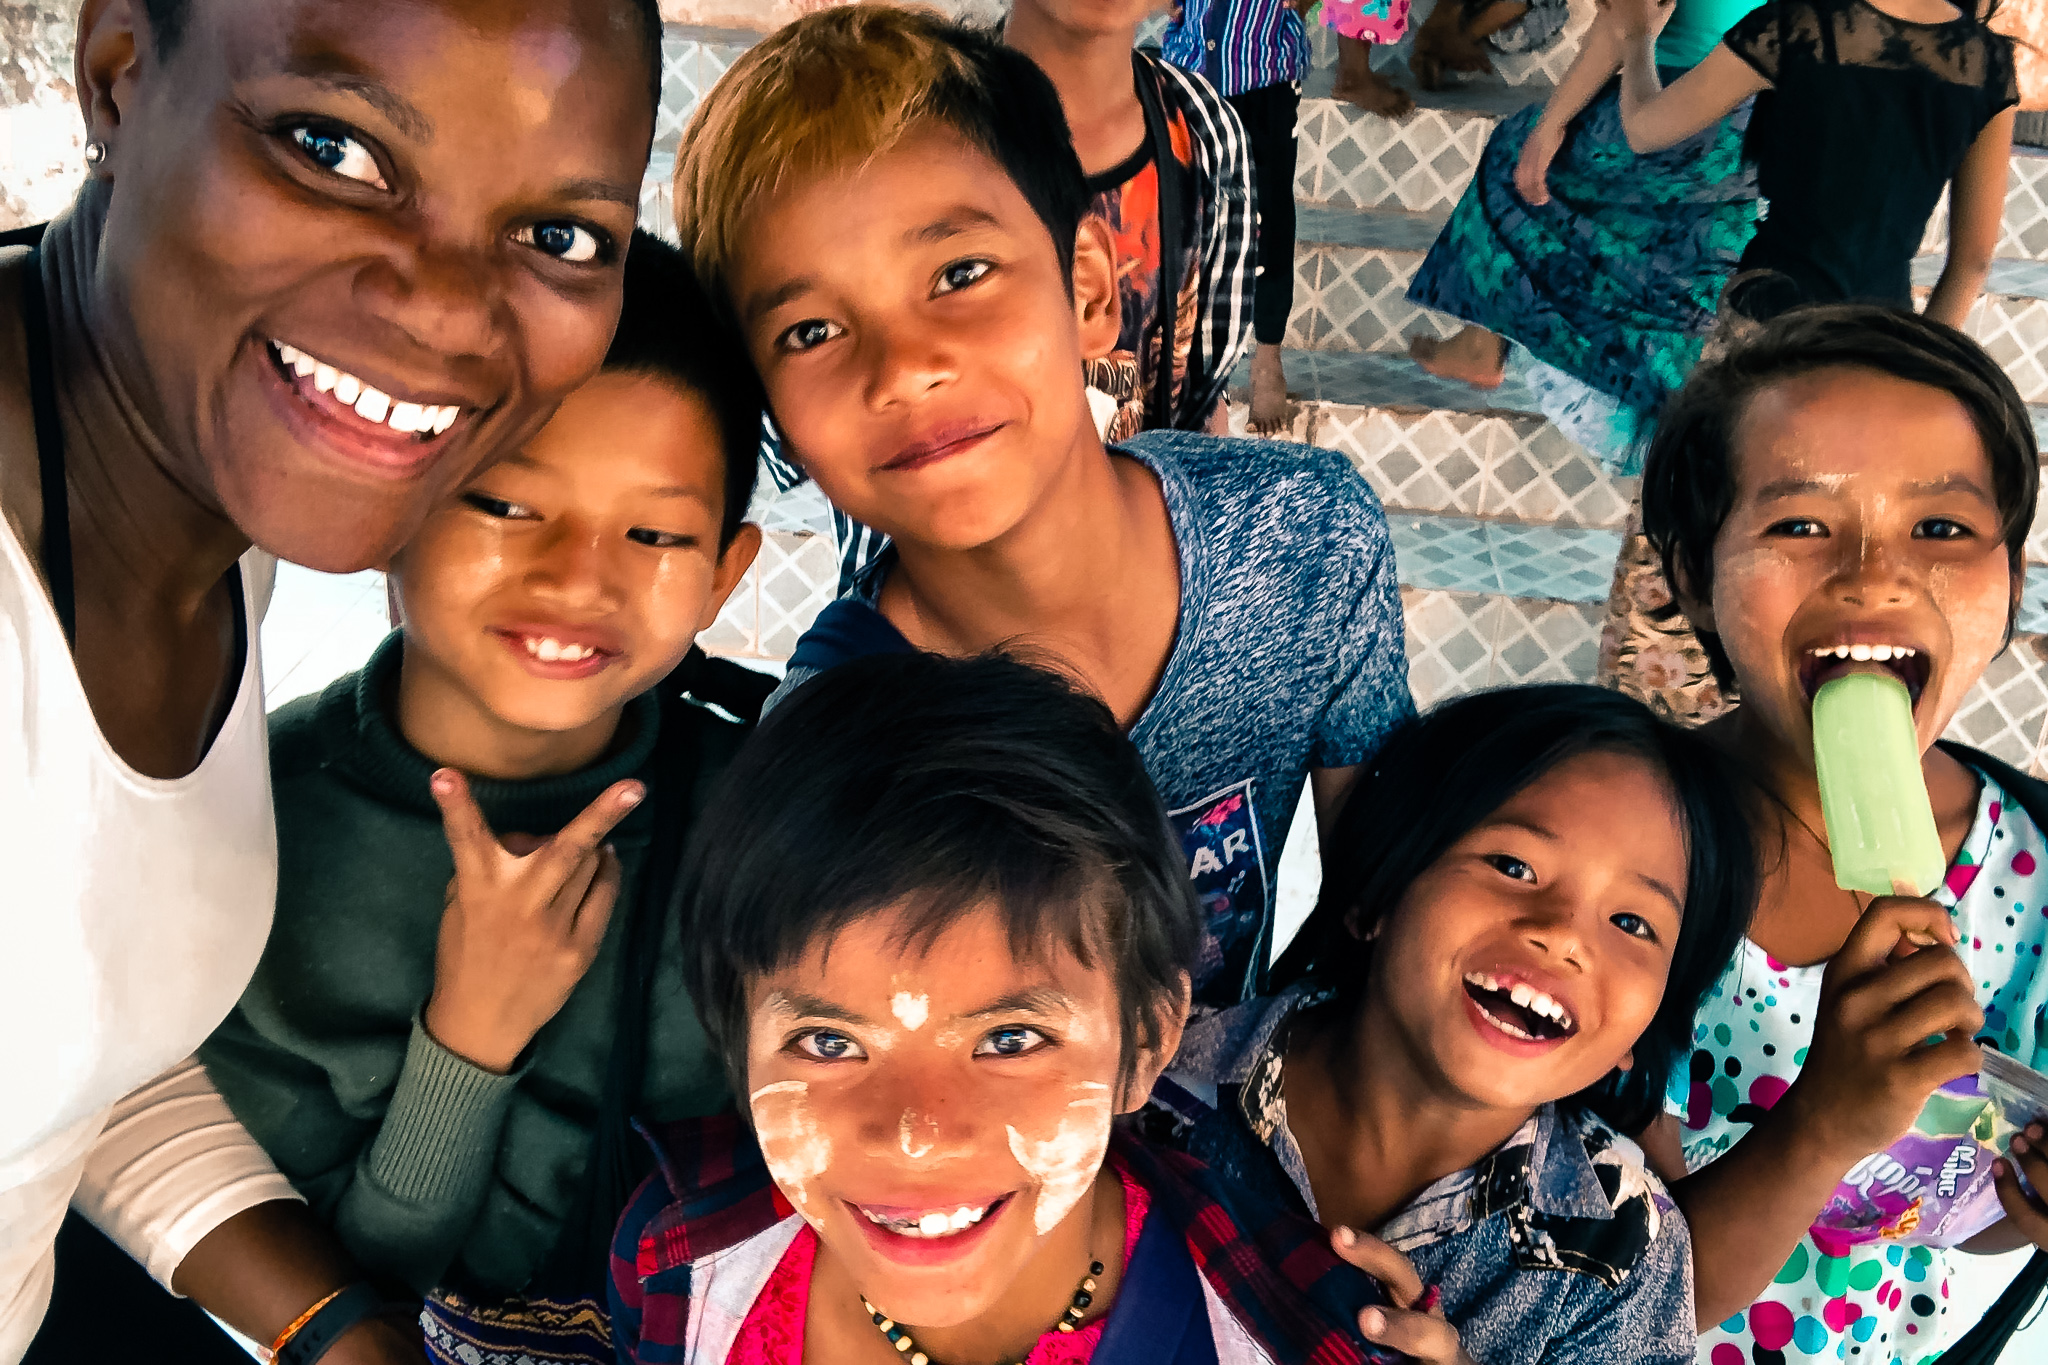 Myanmar, the most underrated places to visit, as it has a very special place in my heart - the children are so magnetic & energetic fill with curiosity, just like how I used to be when I was their age.